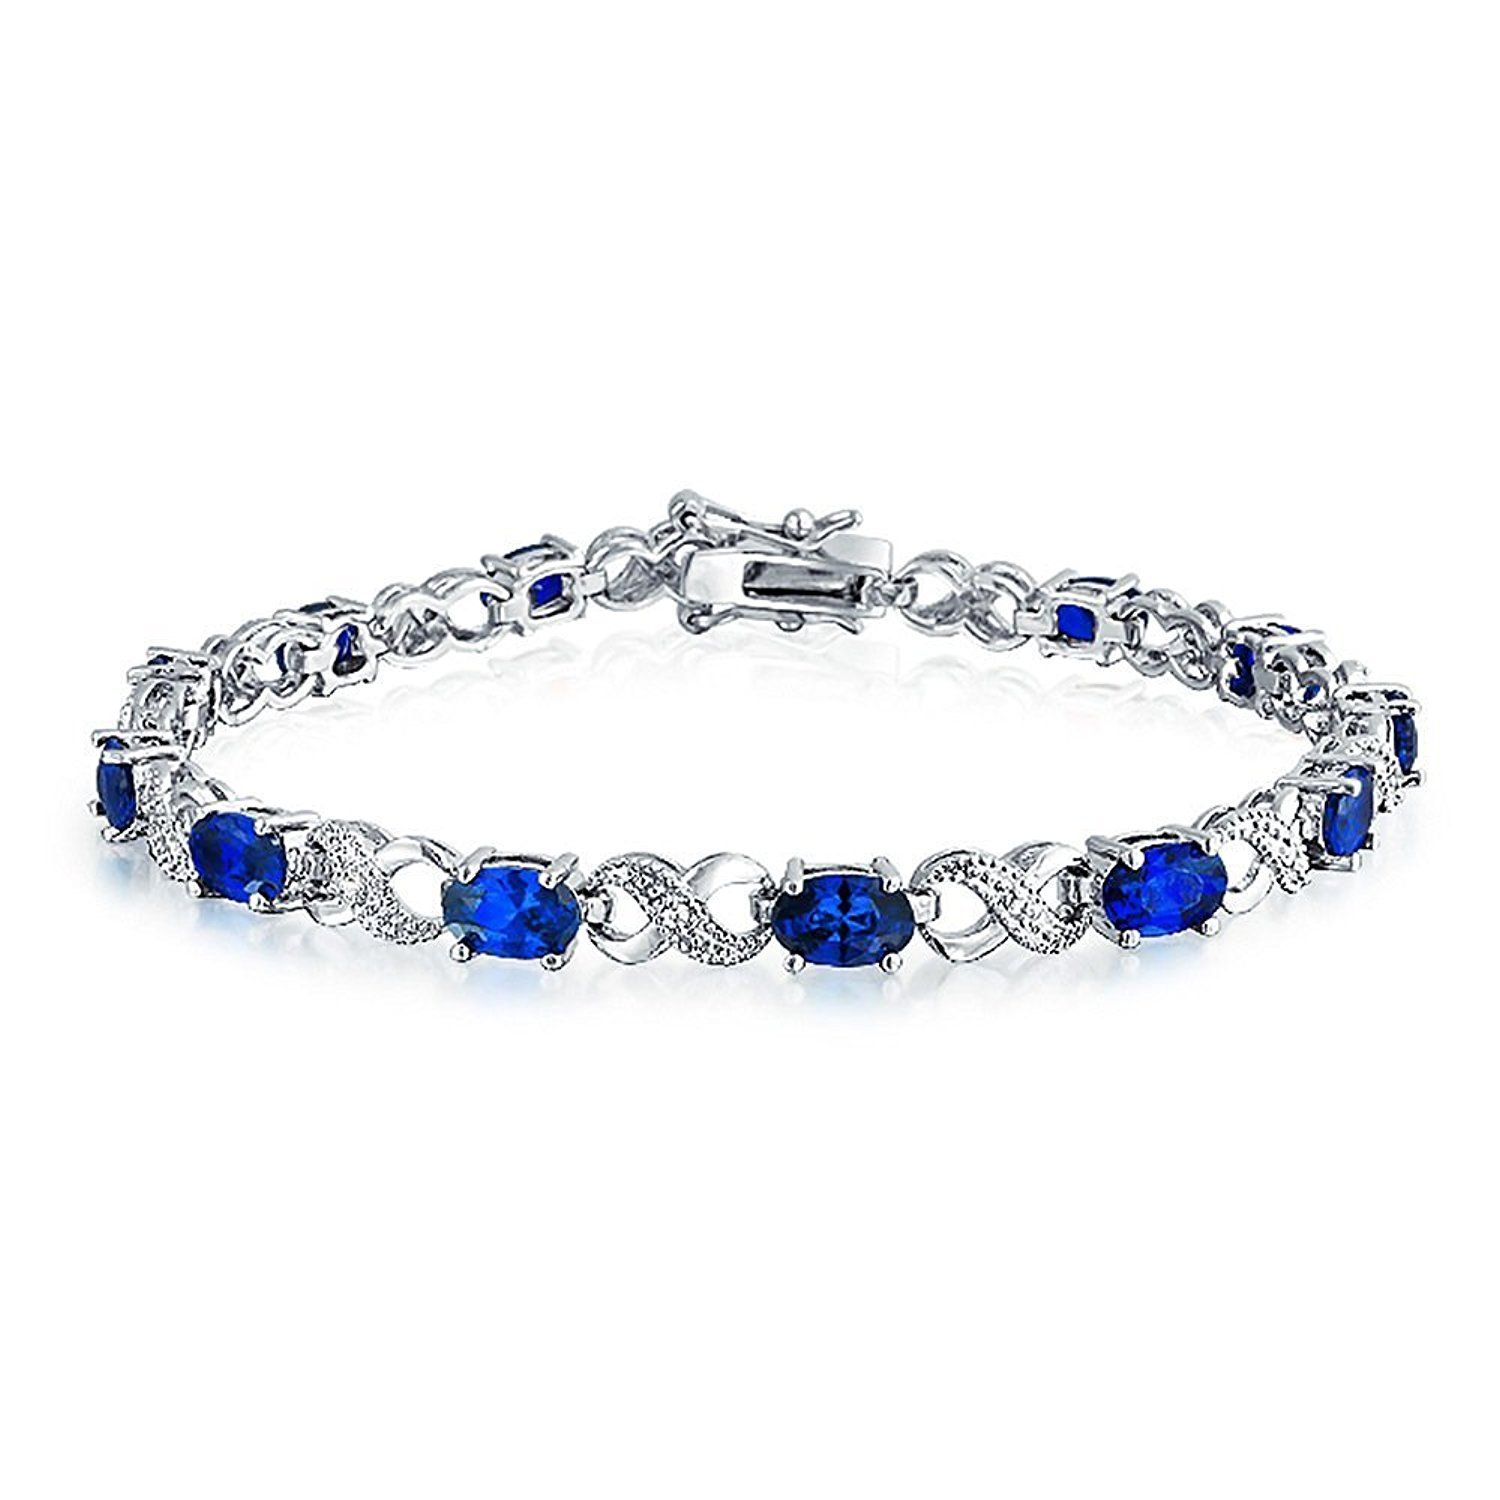 Bling jewelry simulated sapphire cz figure eight infinity tennis